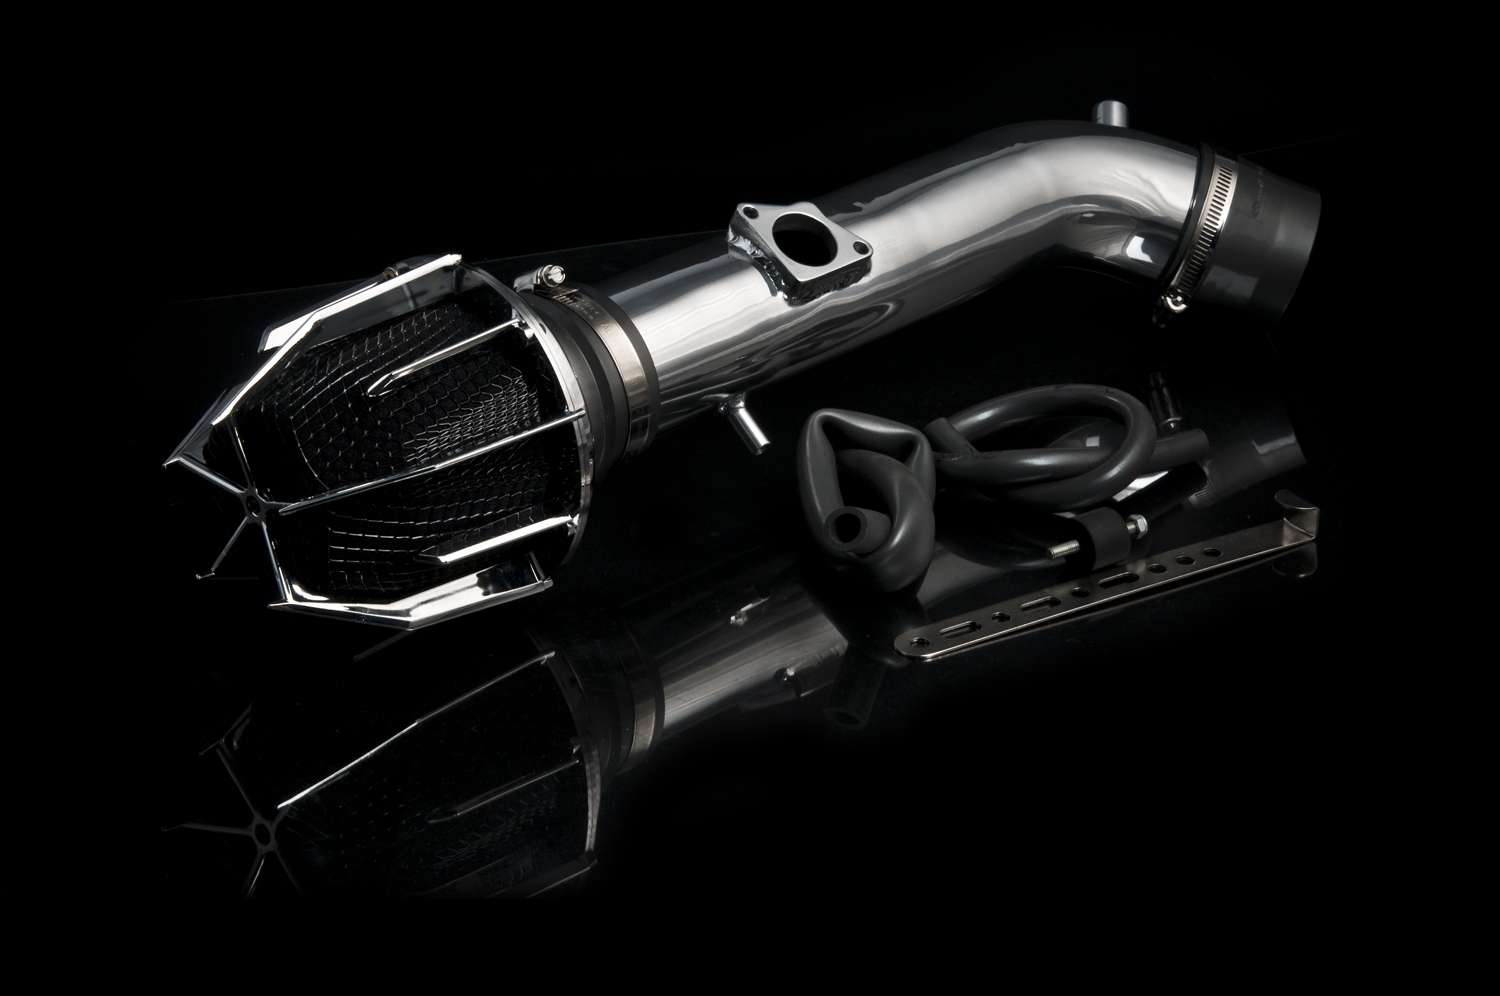 Lexus GS300 2001-2004 Weapon-R Dragon Air Intake